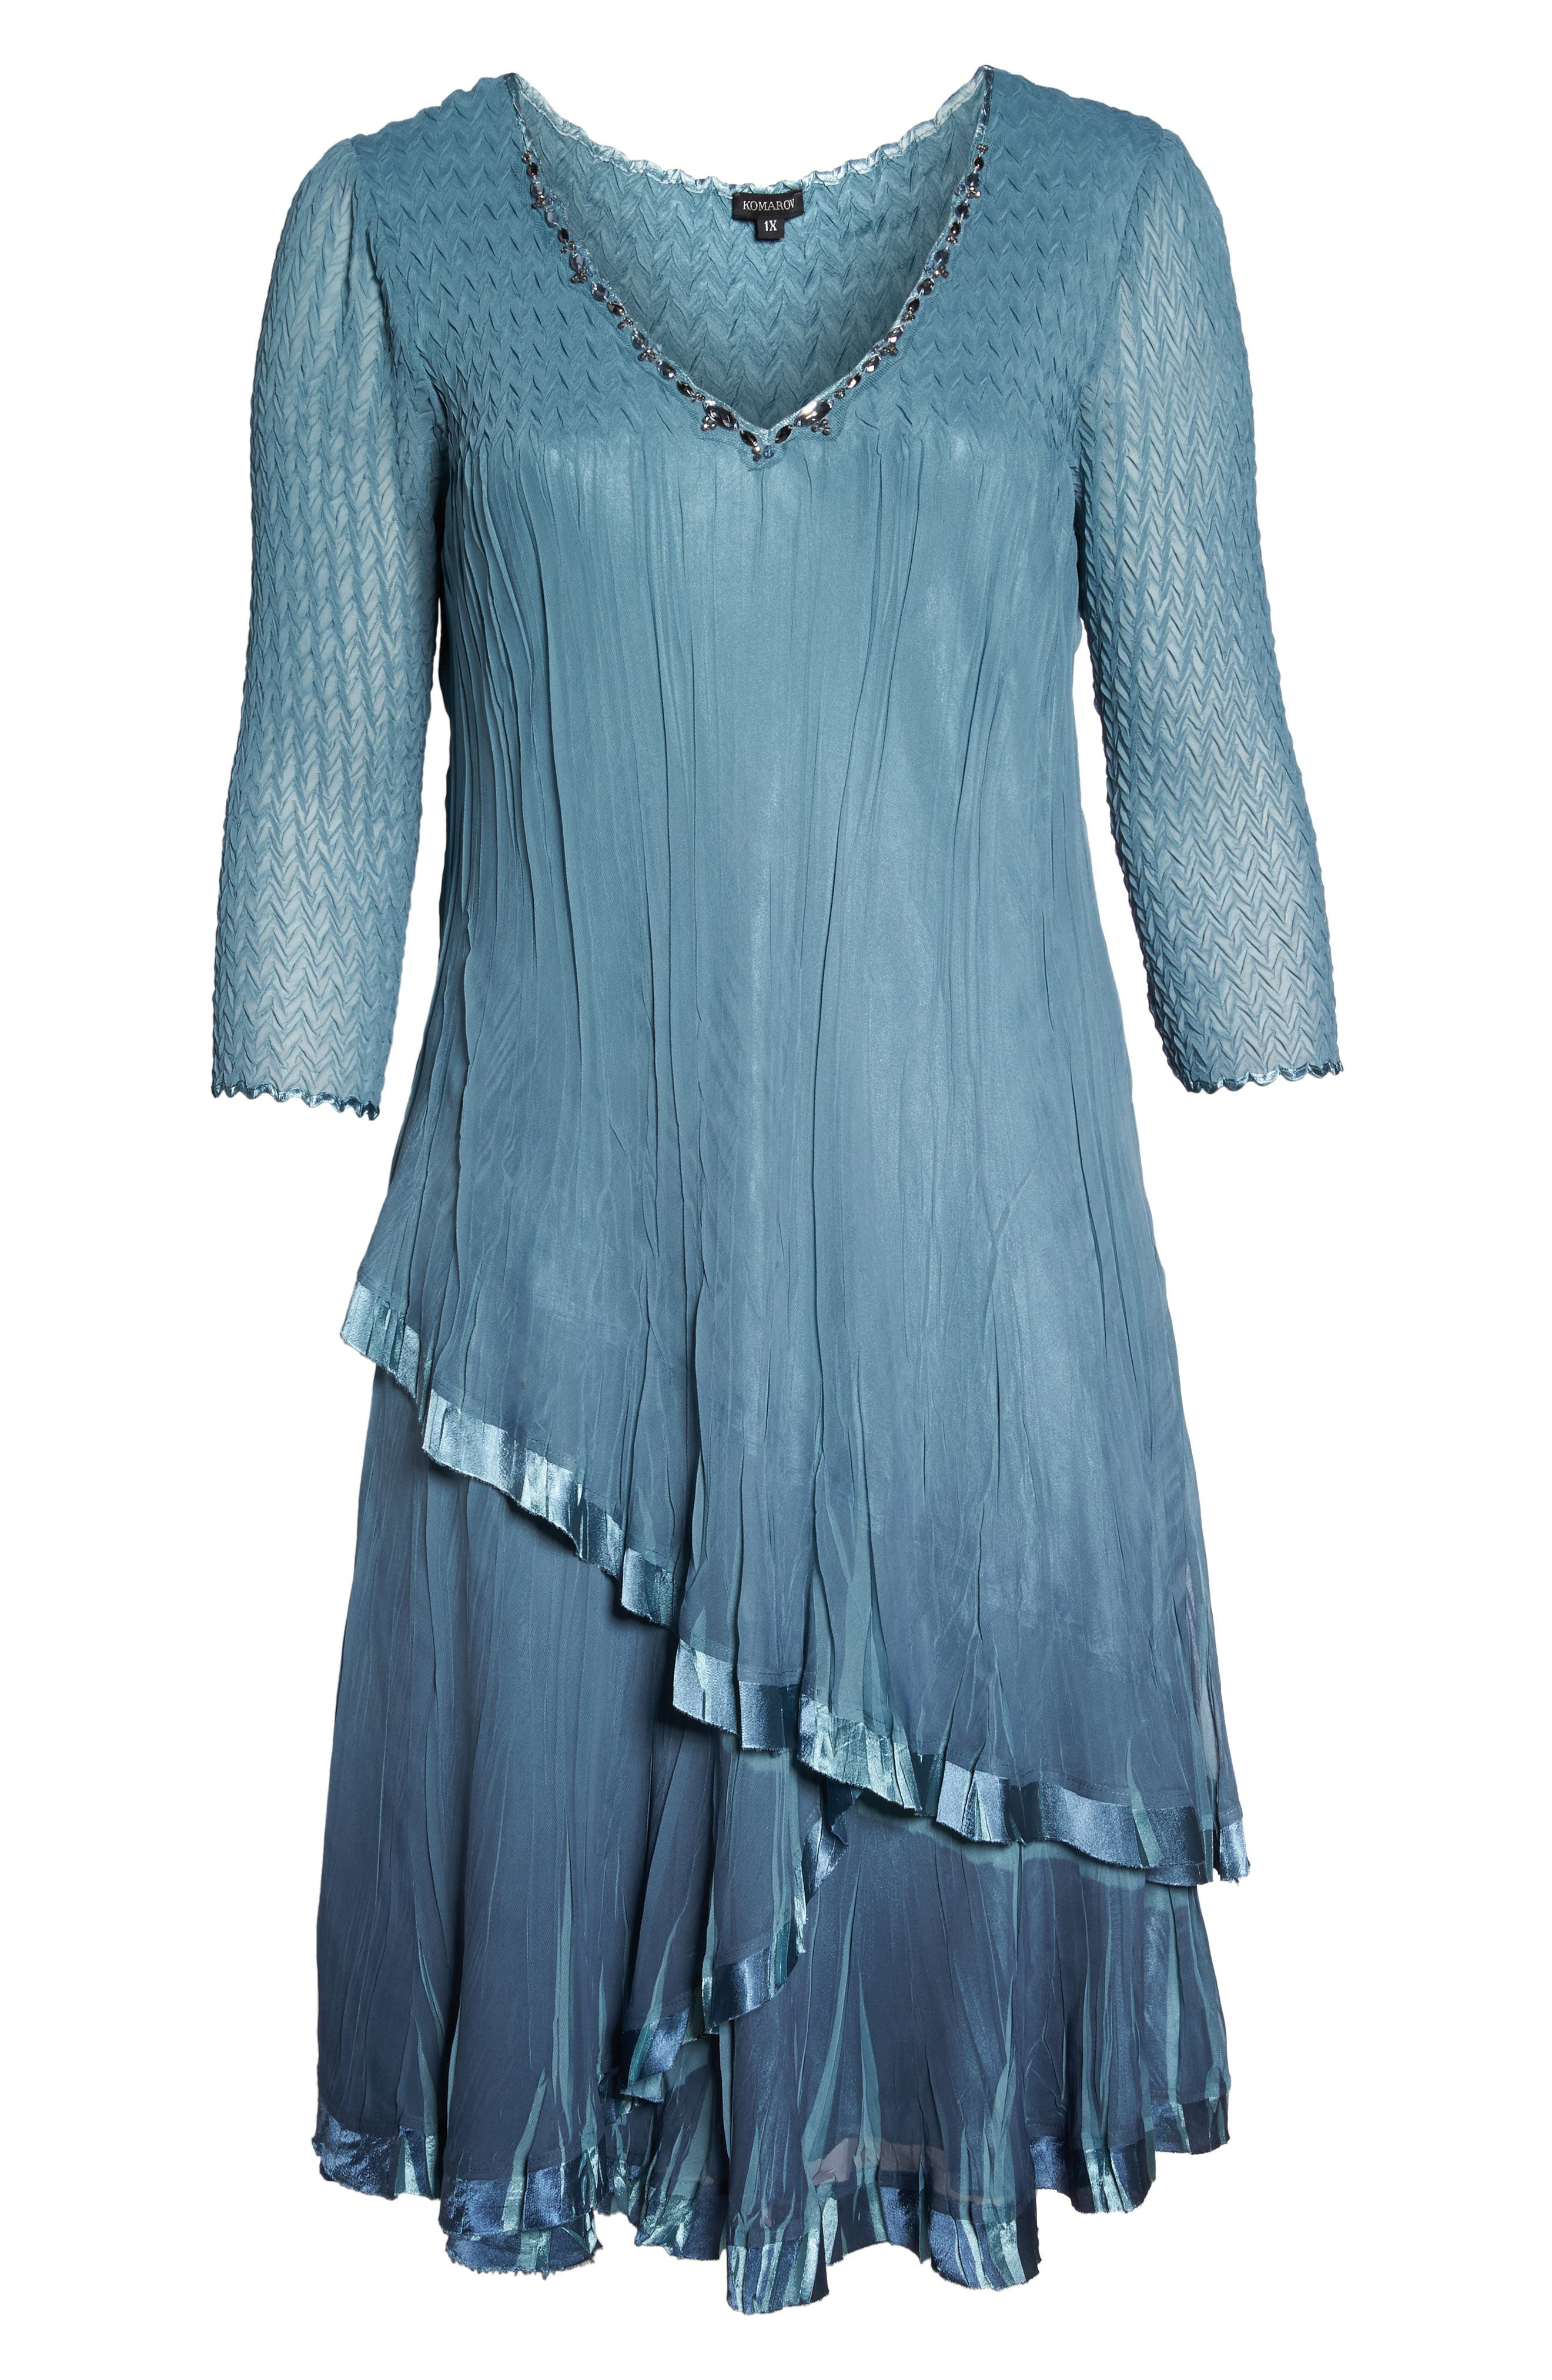 Bead Trim Tiered Chiffon Dress,                             Alternate thumbnail 6, color,                             Silver Blue Night Ombre